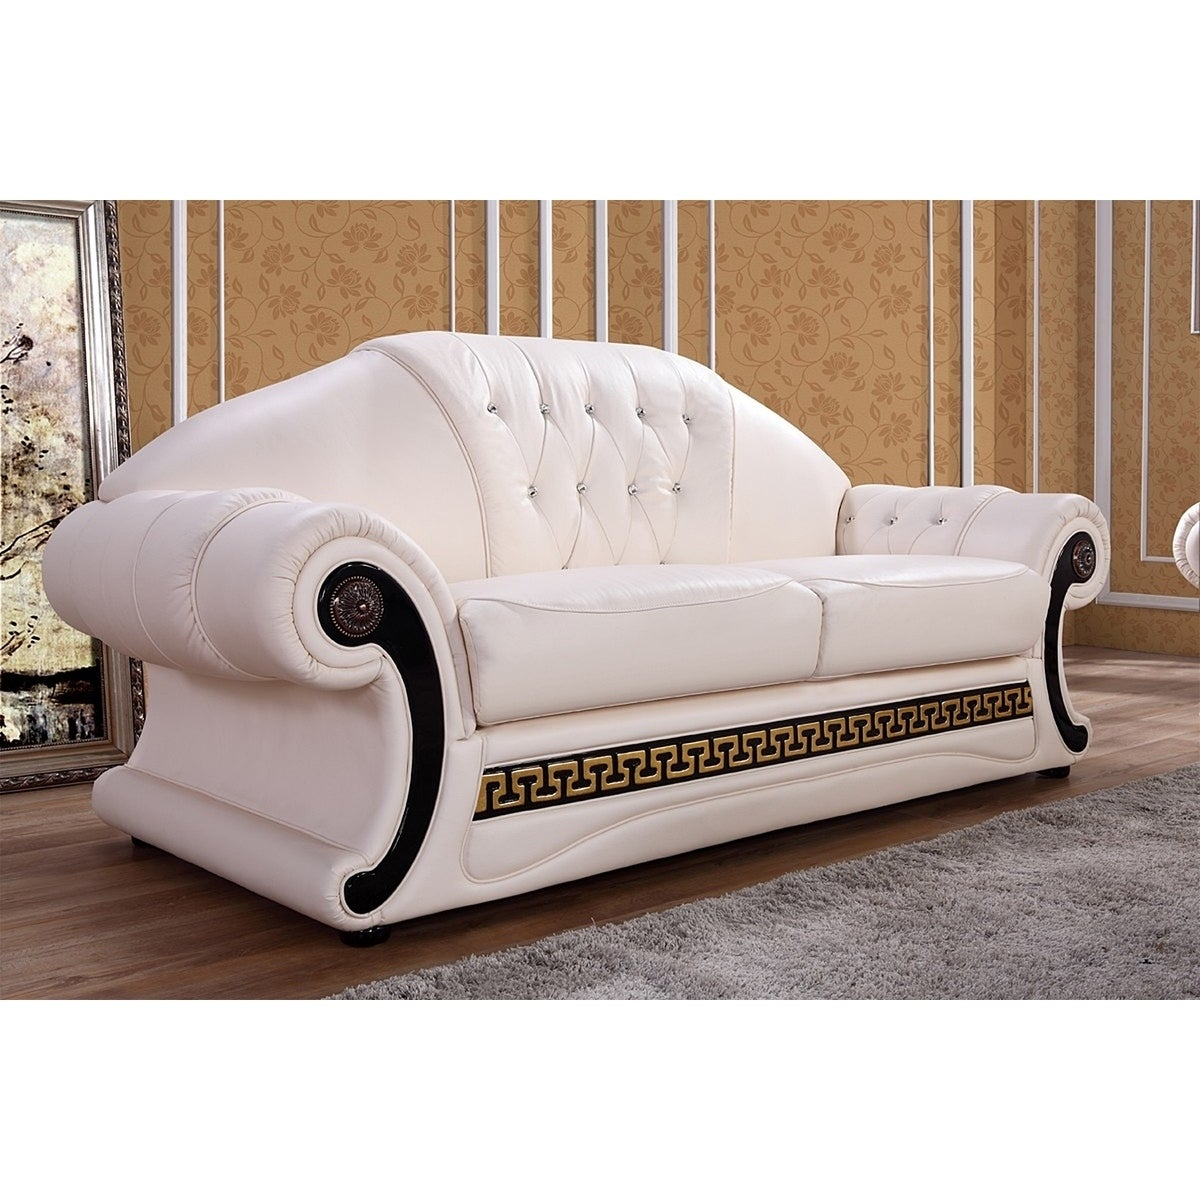 Shop Black Friday Deals On Utica Cream Italian Leather Sofa Loveseat And Chaise Set On Sale Overstock 18230044